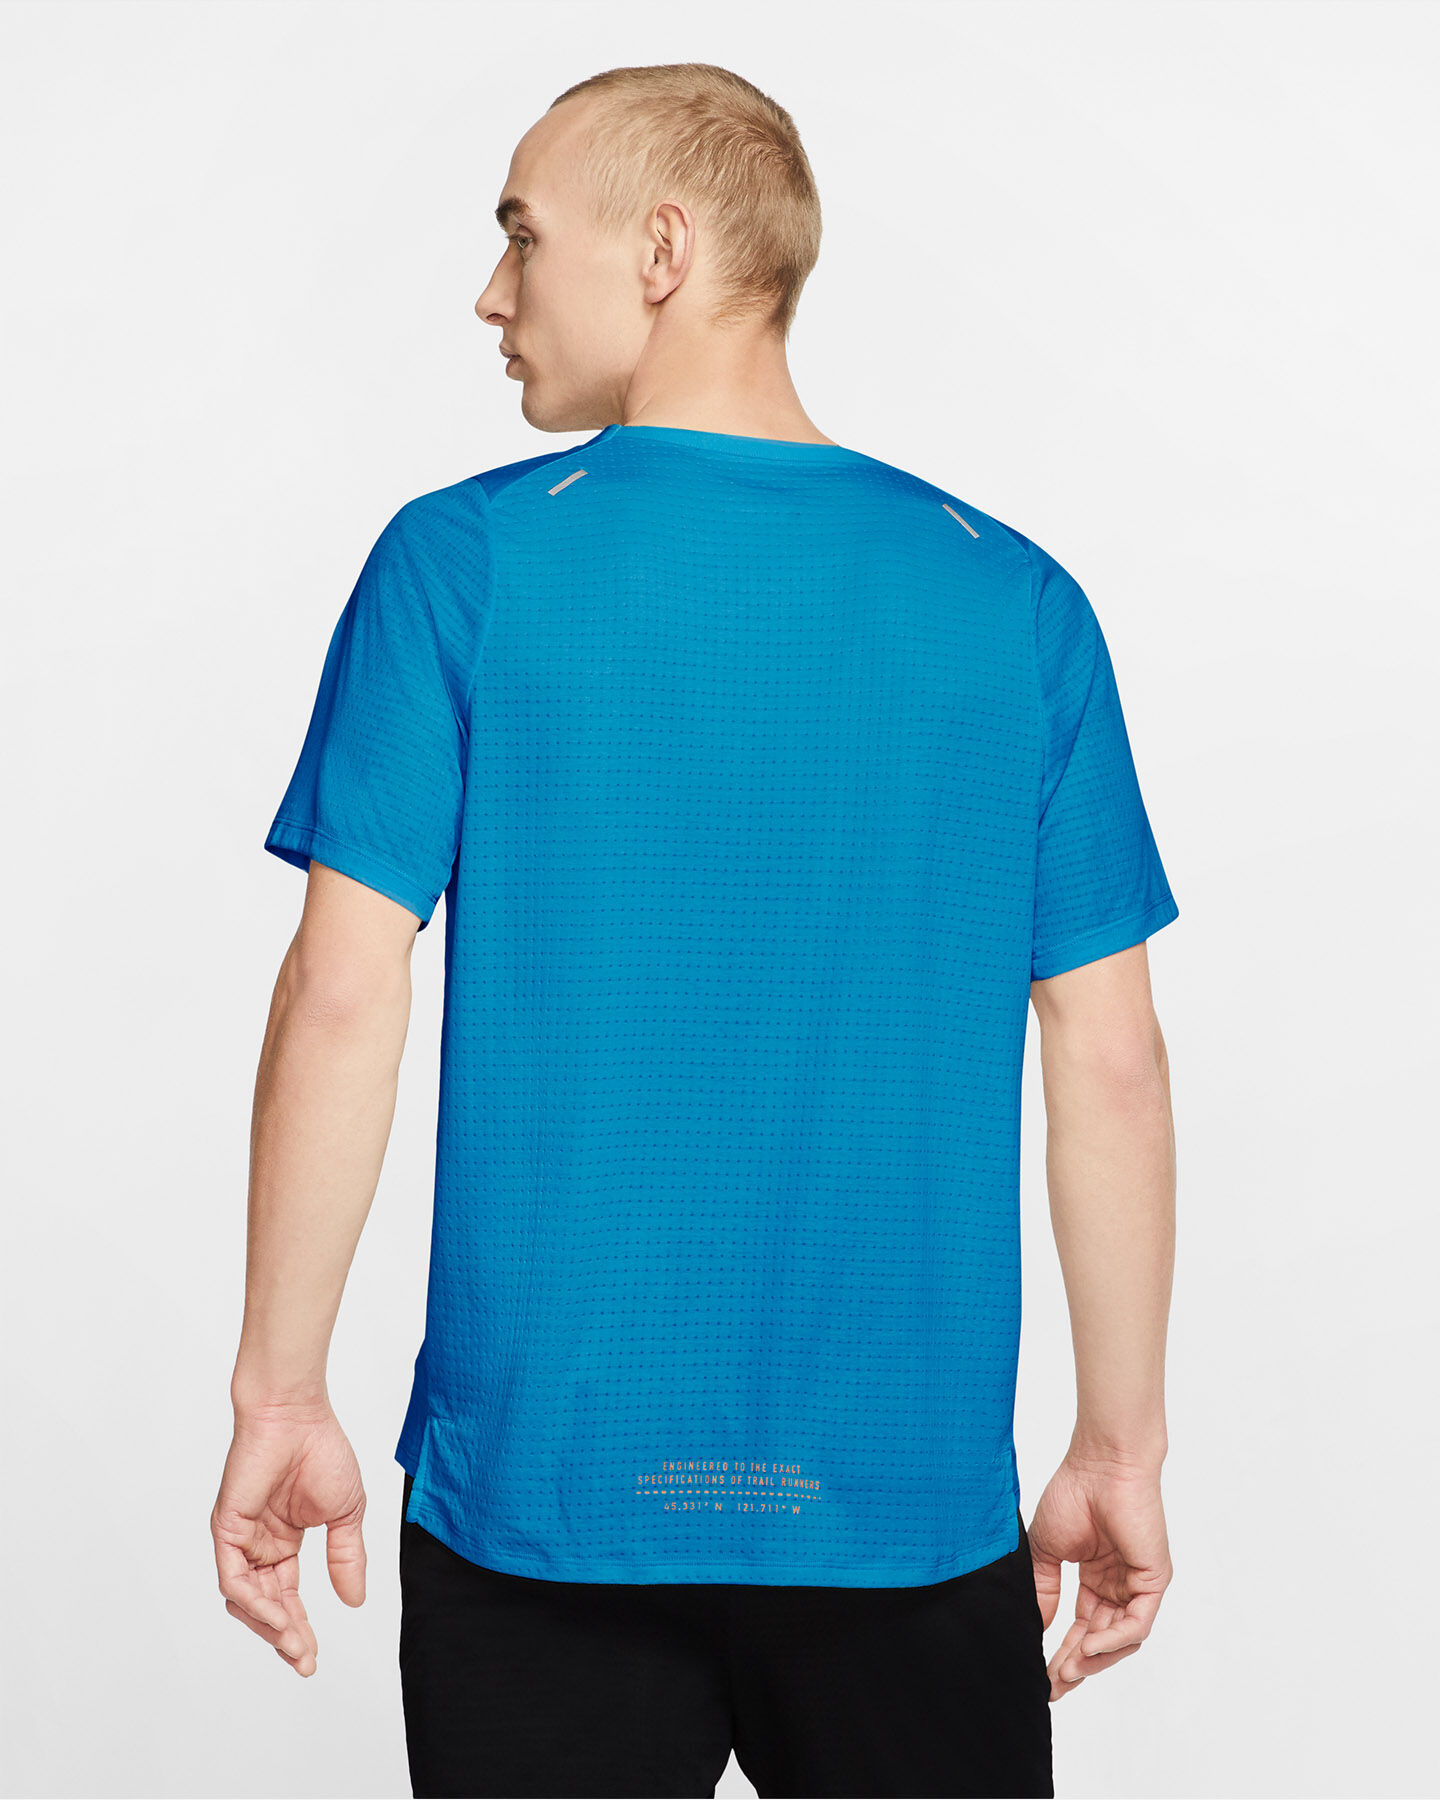 T-Shirt running NIKE RISE 365 TRAIL M S5225209 scatto 3